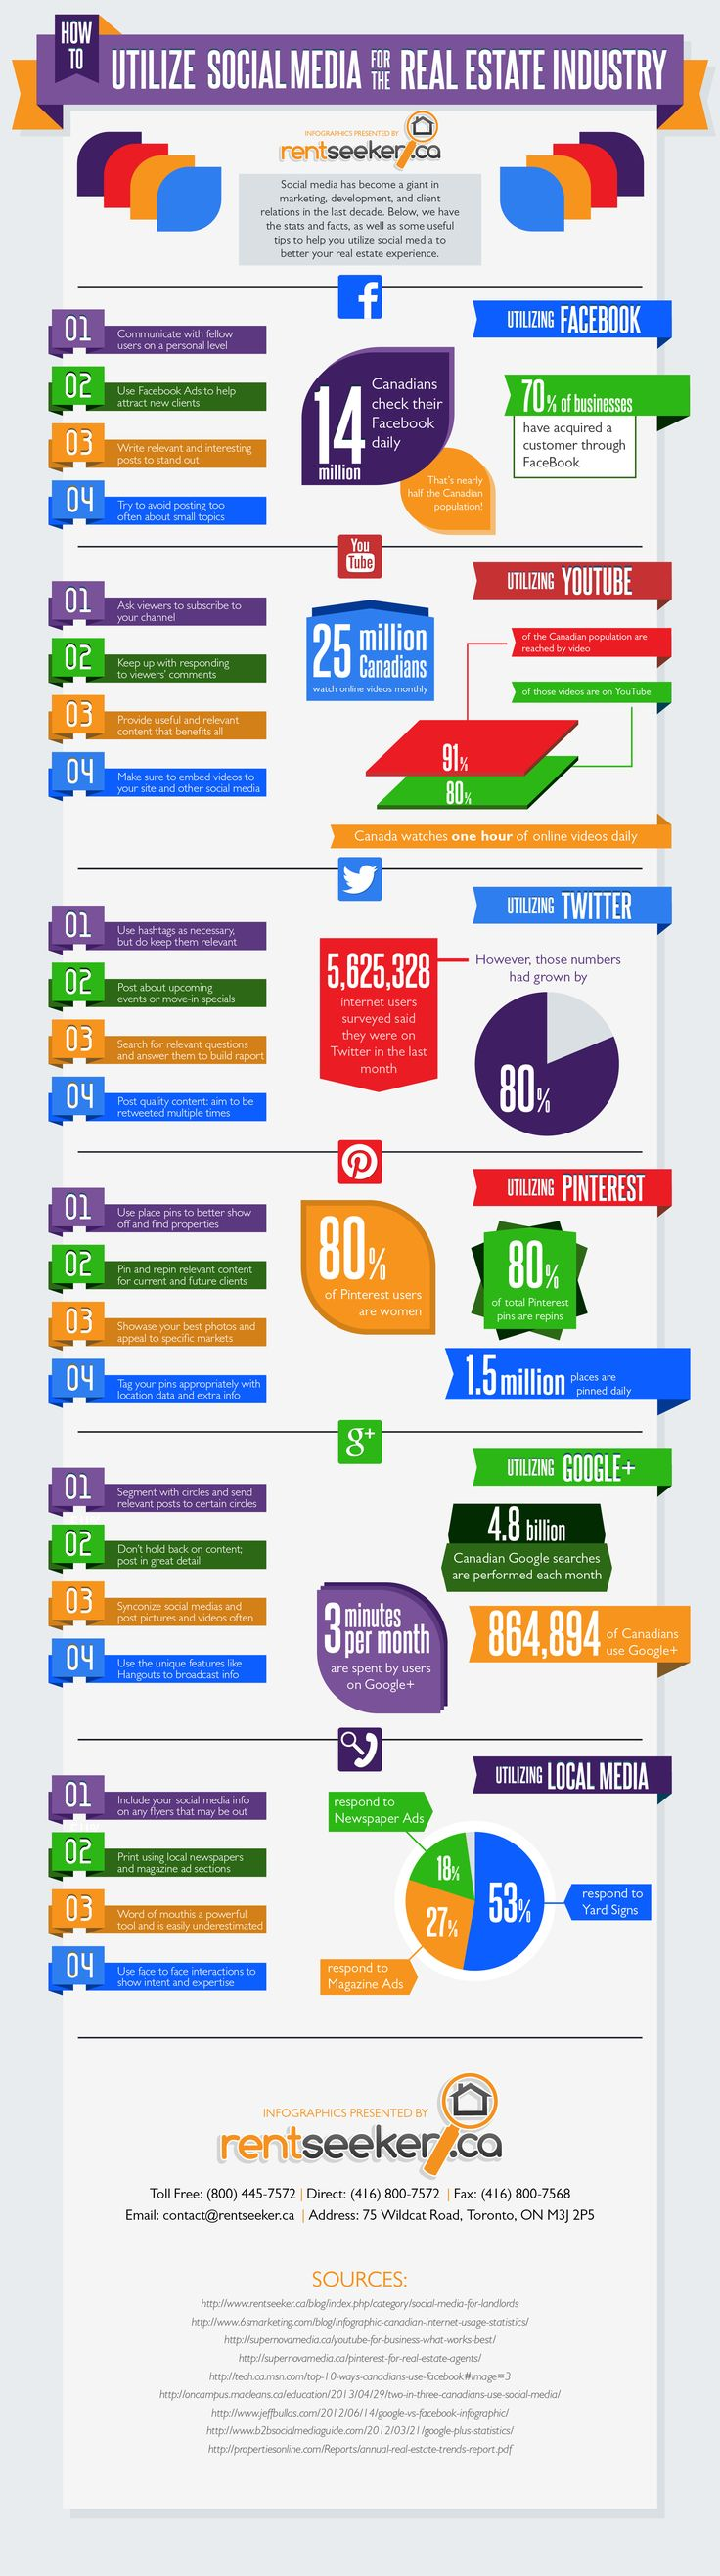 How to Leverage Facebook, YouTube, Twitter, Google+ and Pinterest for Real Estate Marketing - #infographic #SocialMedia